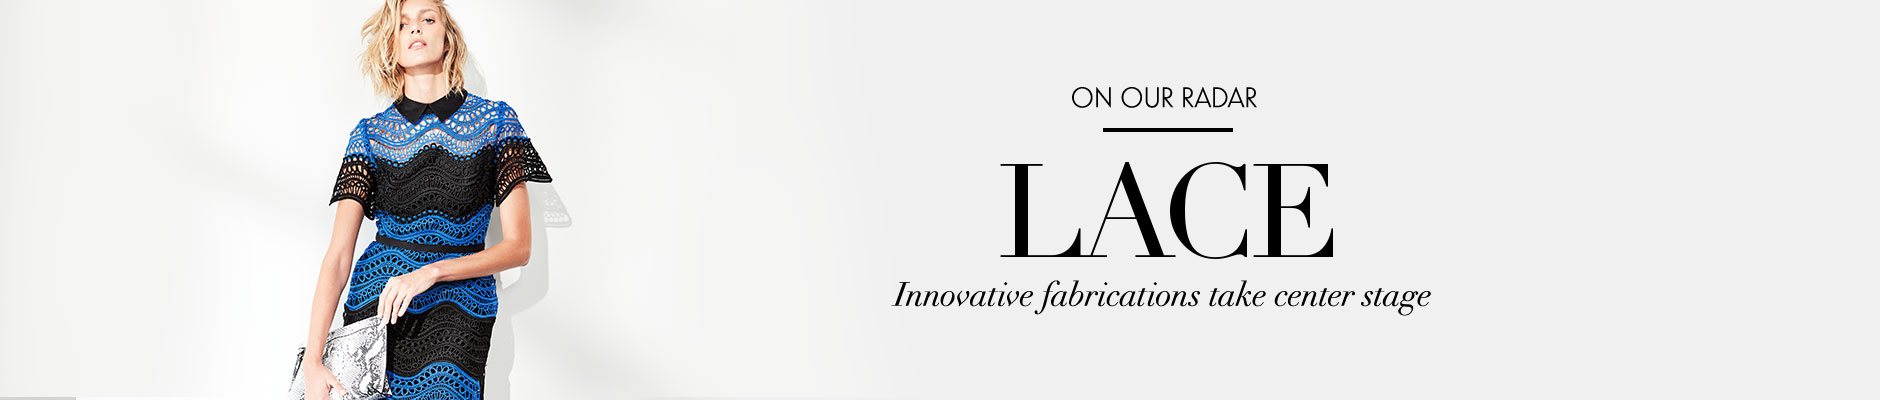 On our radar - Lace - Innovative fabrications take center stage